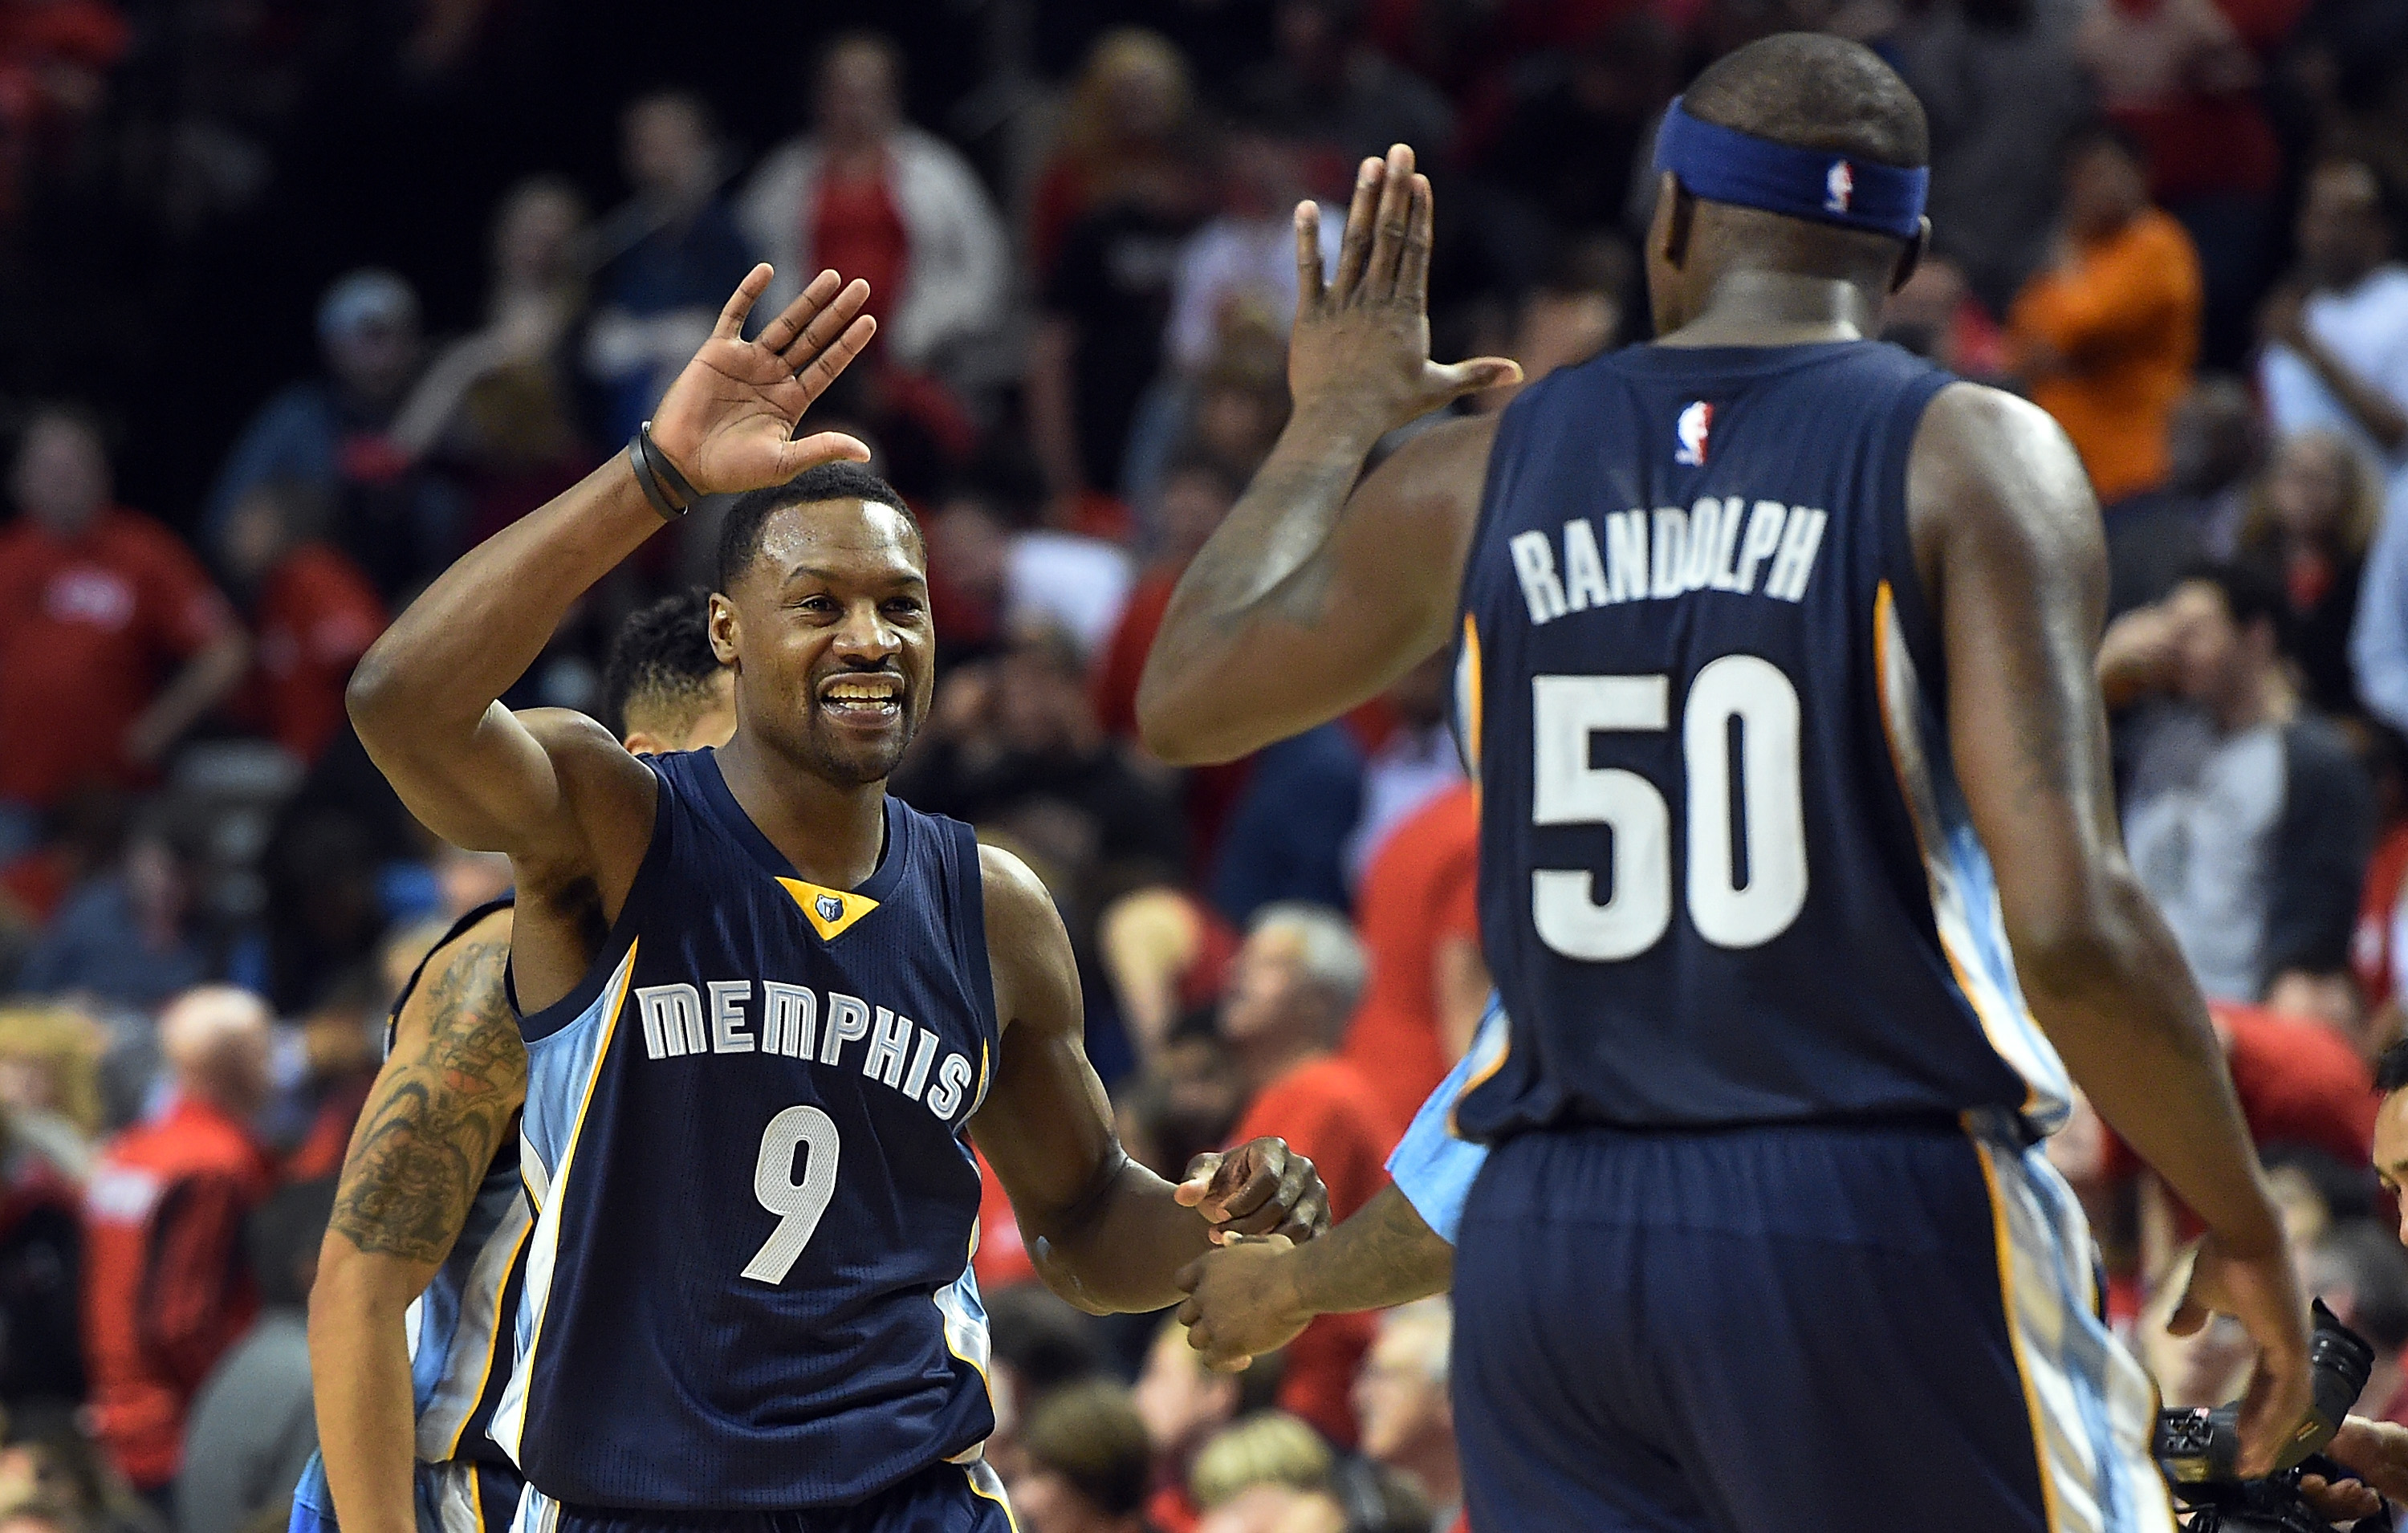 Grizzlies hold off a late Trail Blazers rally to go up 3-0